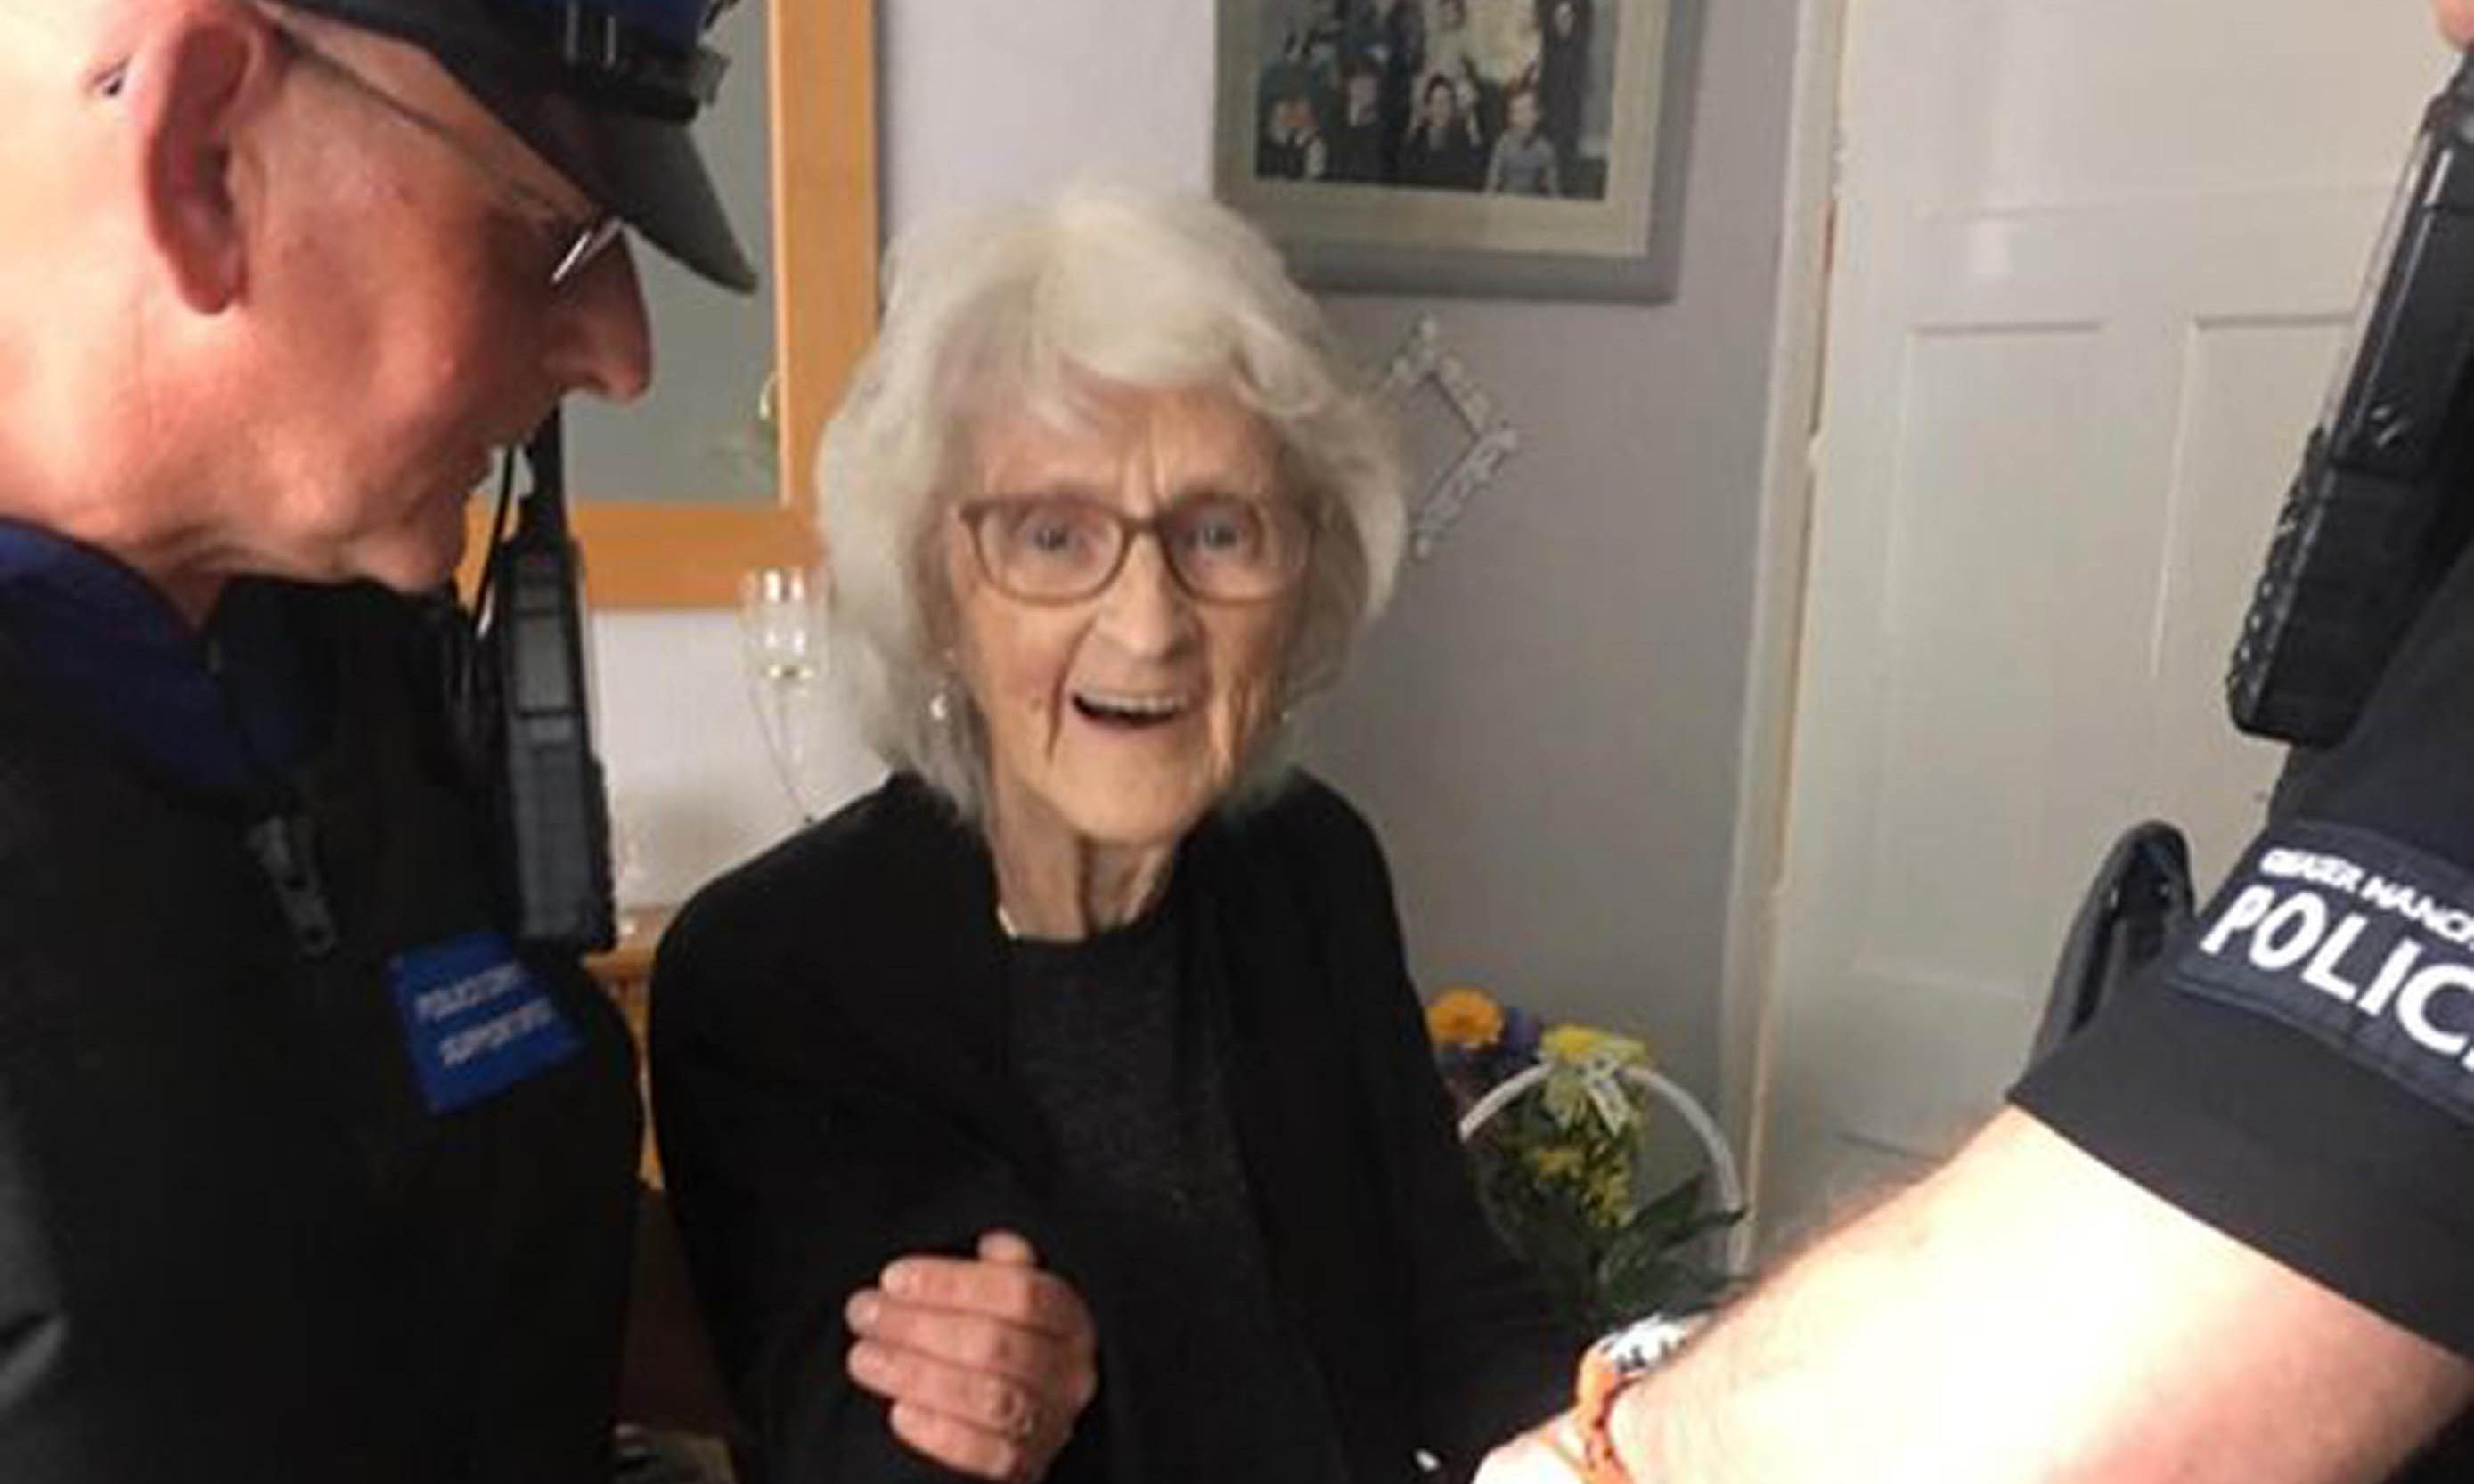 Woman, 93, arrested as a dying wish after being 'good all her life'